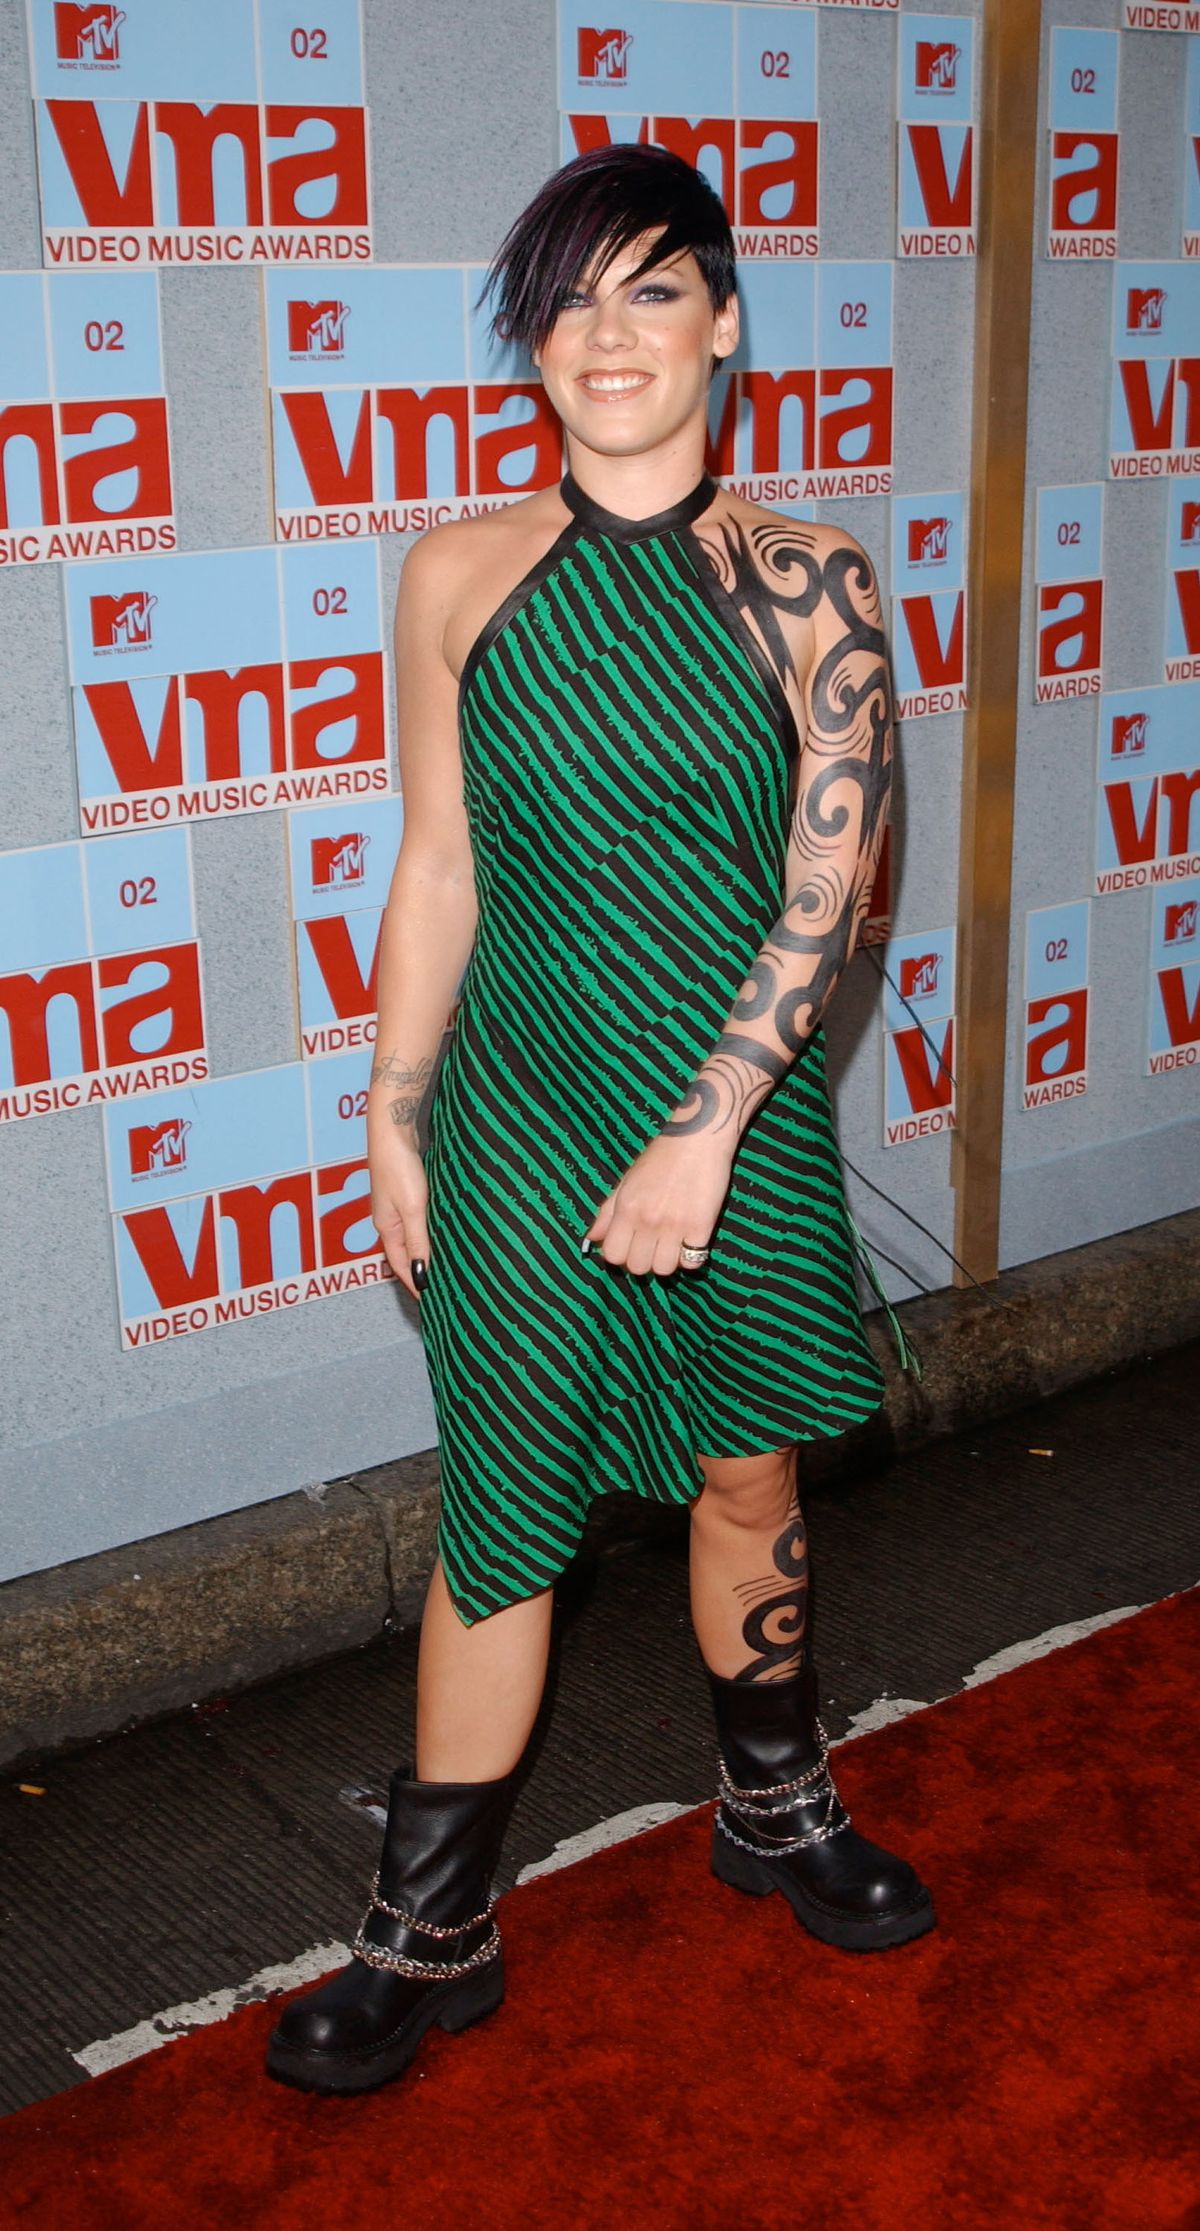 NEW YORK - AUGUST 29:  Singer Pink arrives at the 2002 MTV Video Music Awards at Radio City Music Hall August 29, 2002 in New York City.  (Photo by Mark Mainz/Getty Images)